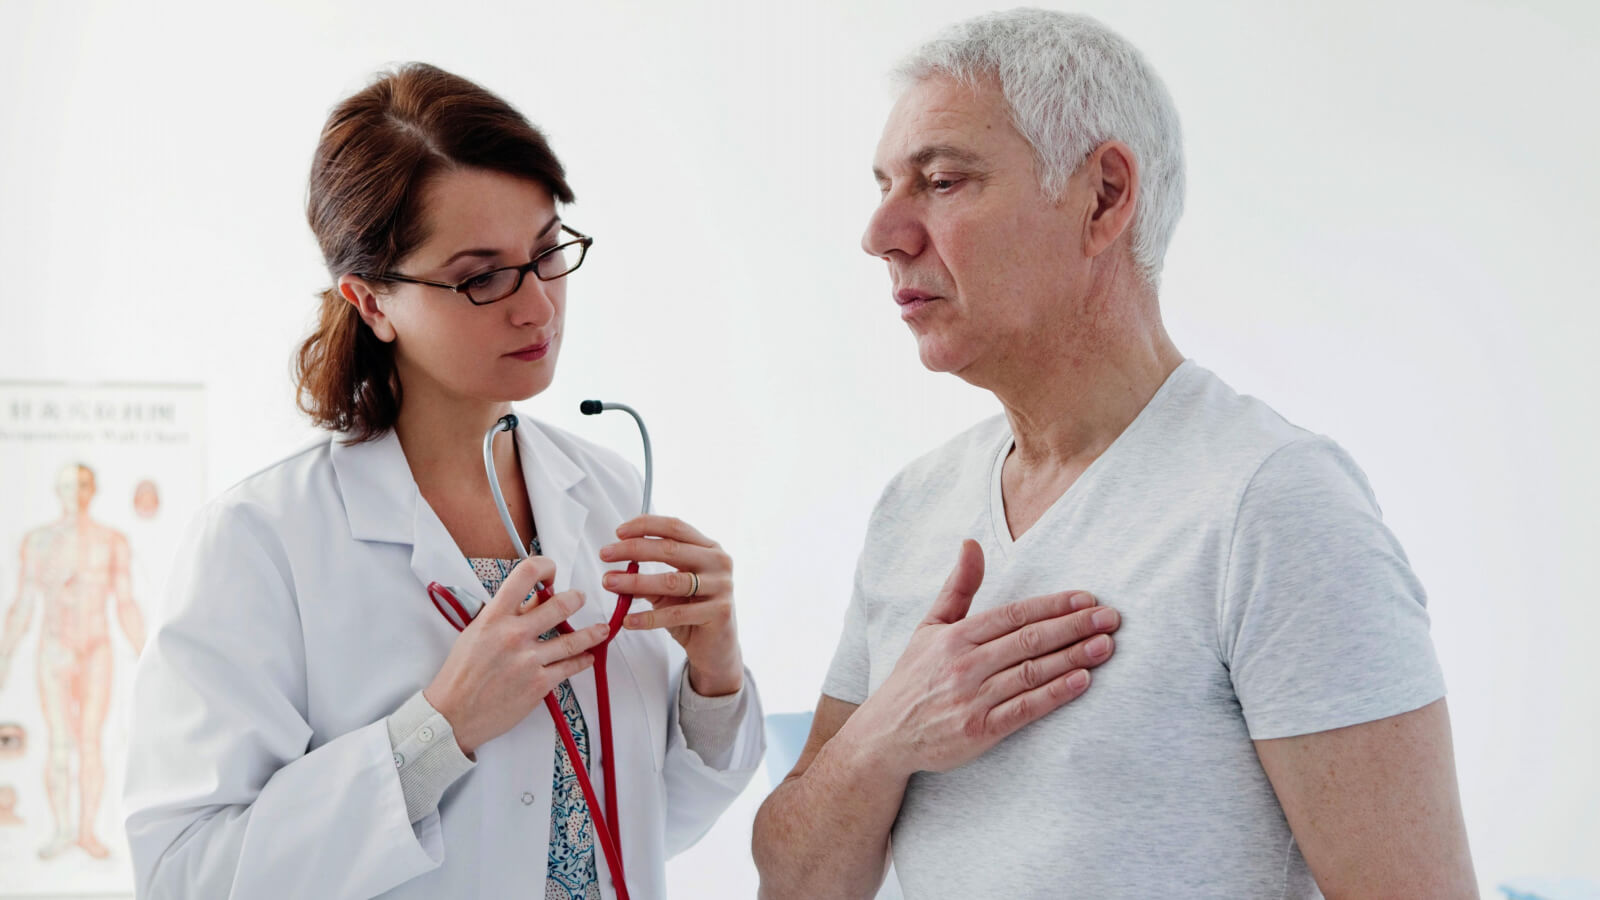 Upset the relationship between heart attacks and strokes